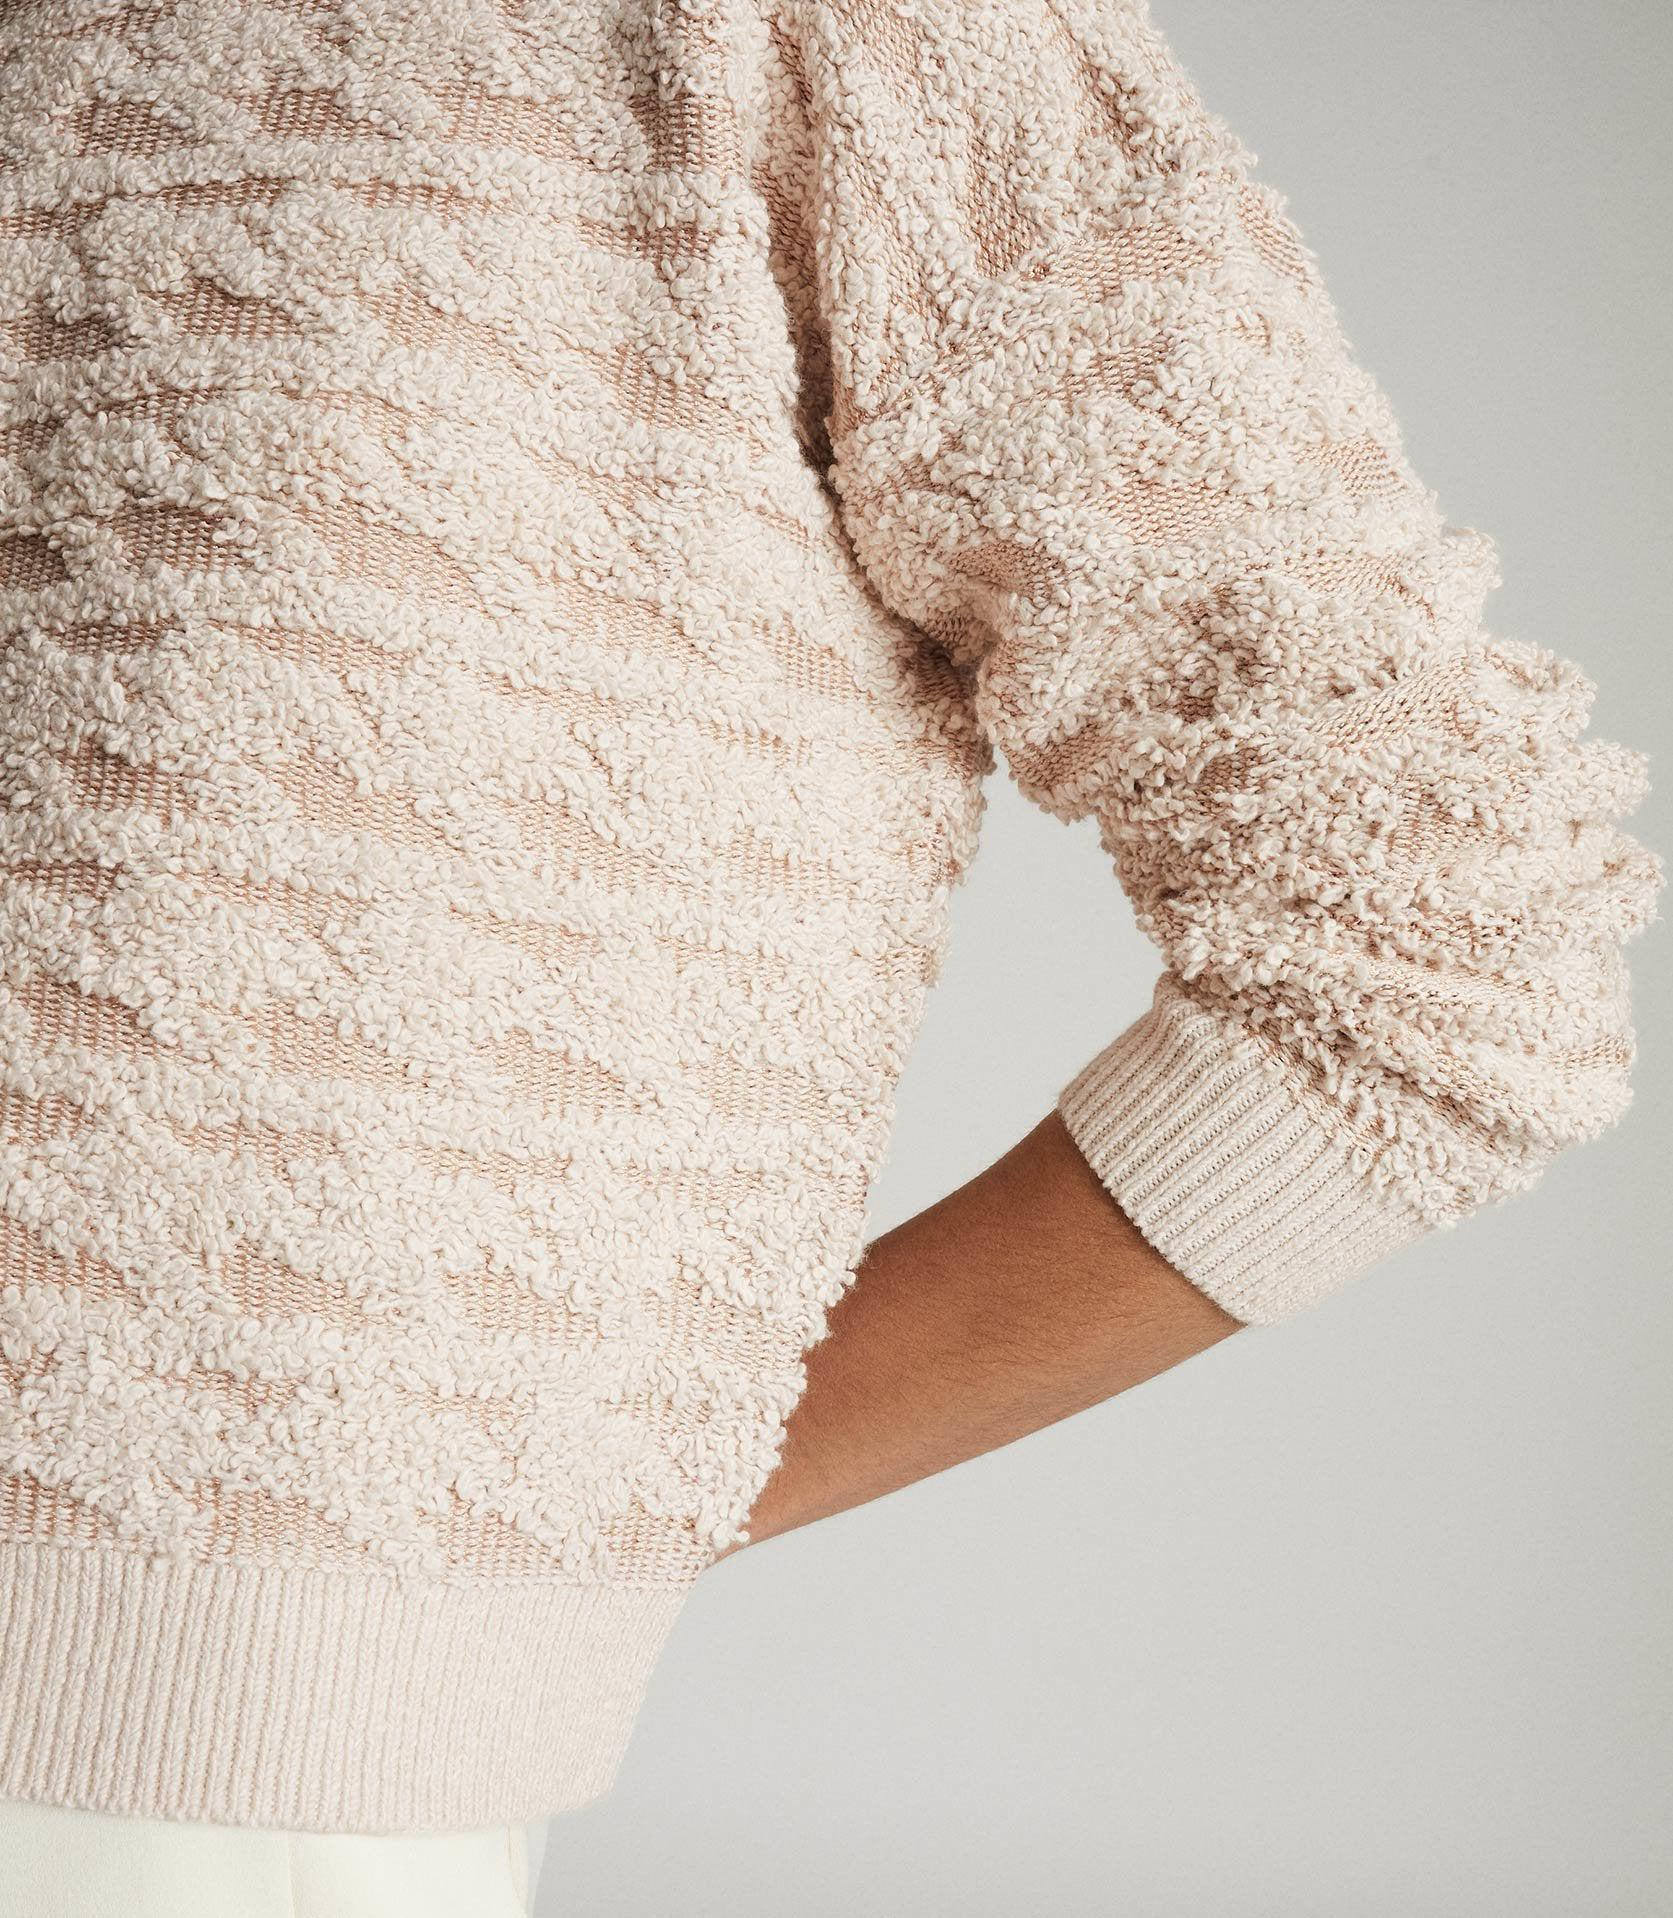 OTTO - TEXTURED PATTERNED JUMPER 4